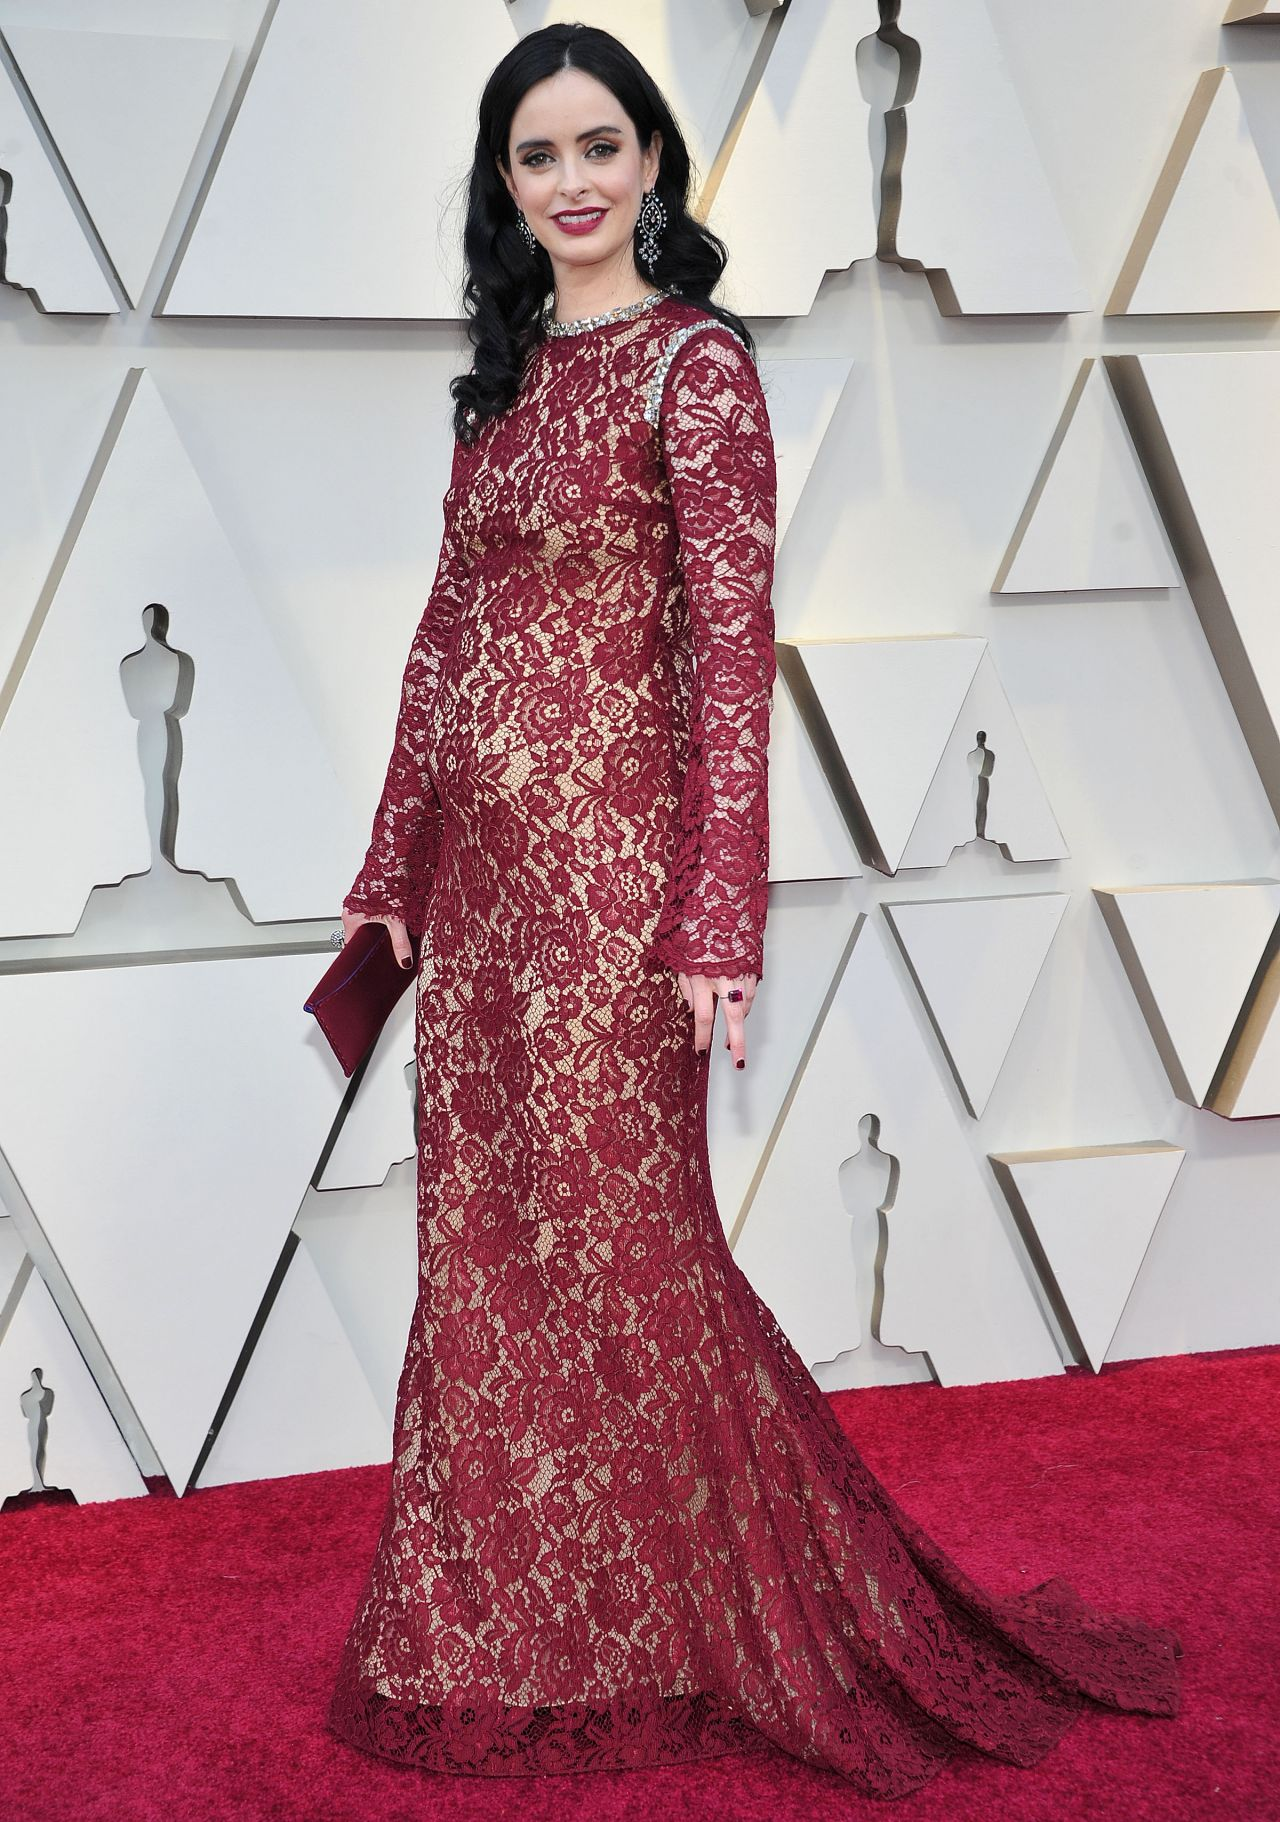 https://celebmafia.com/wp-content/uploads/2019/02/krysten-ritter-2019-elton-john-s-oscars-viewing-party-3.jpg